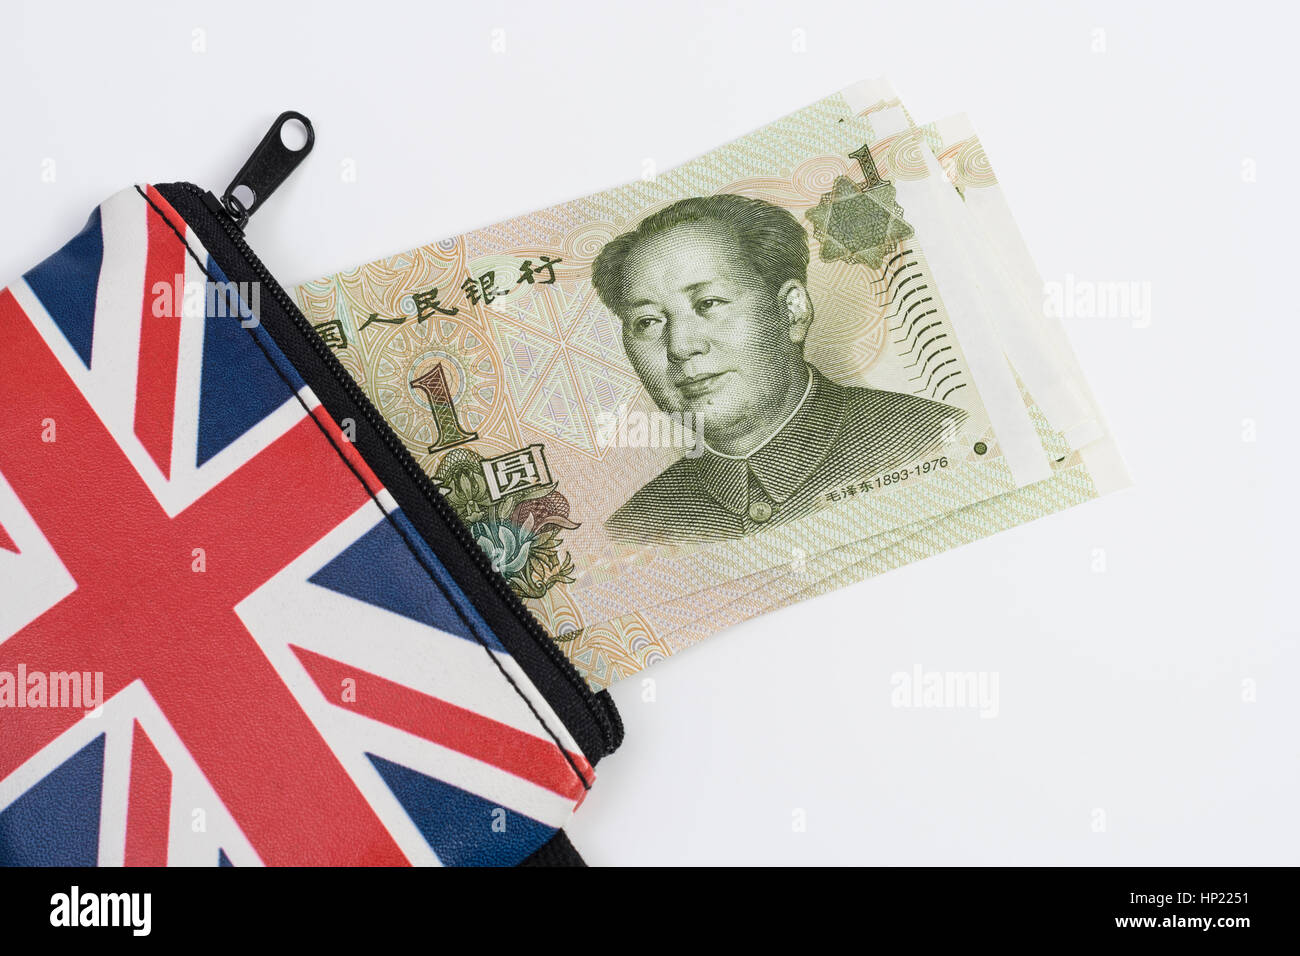 Union Jack coin purse with Chinese 1 Yuan banknotes - as metaphor for Yuan / Renminbi-Sterling exchange rate. - Stock Image